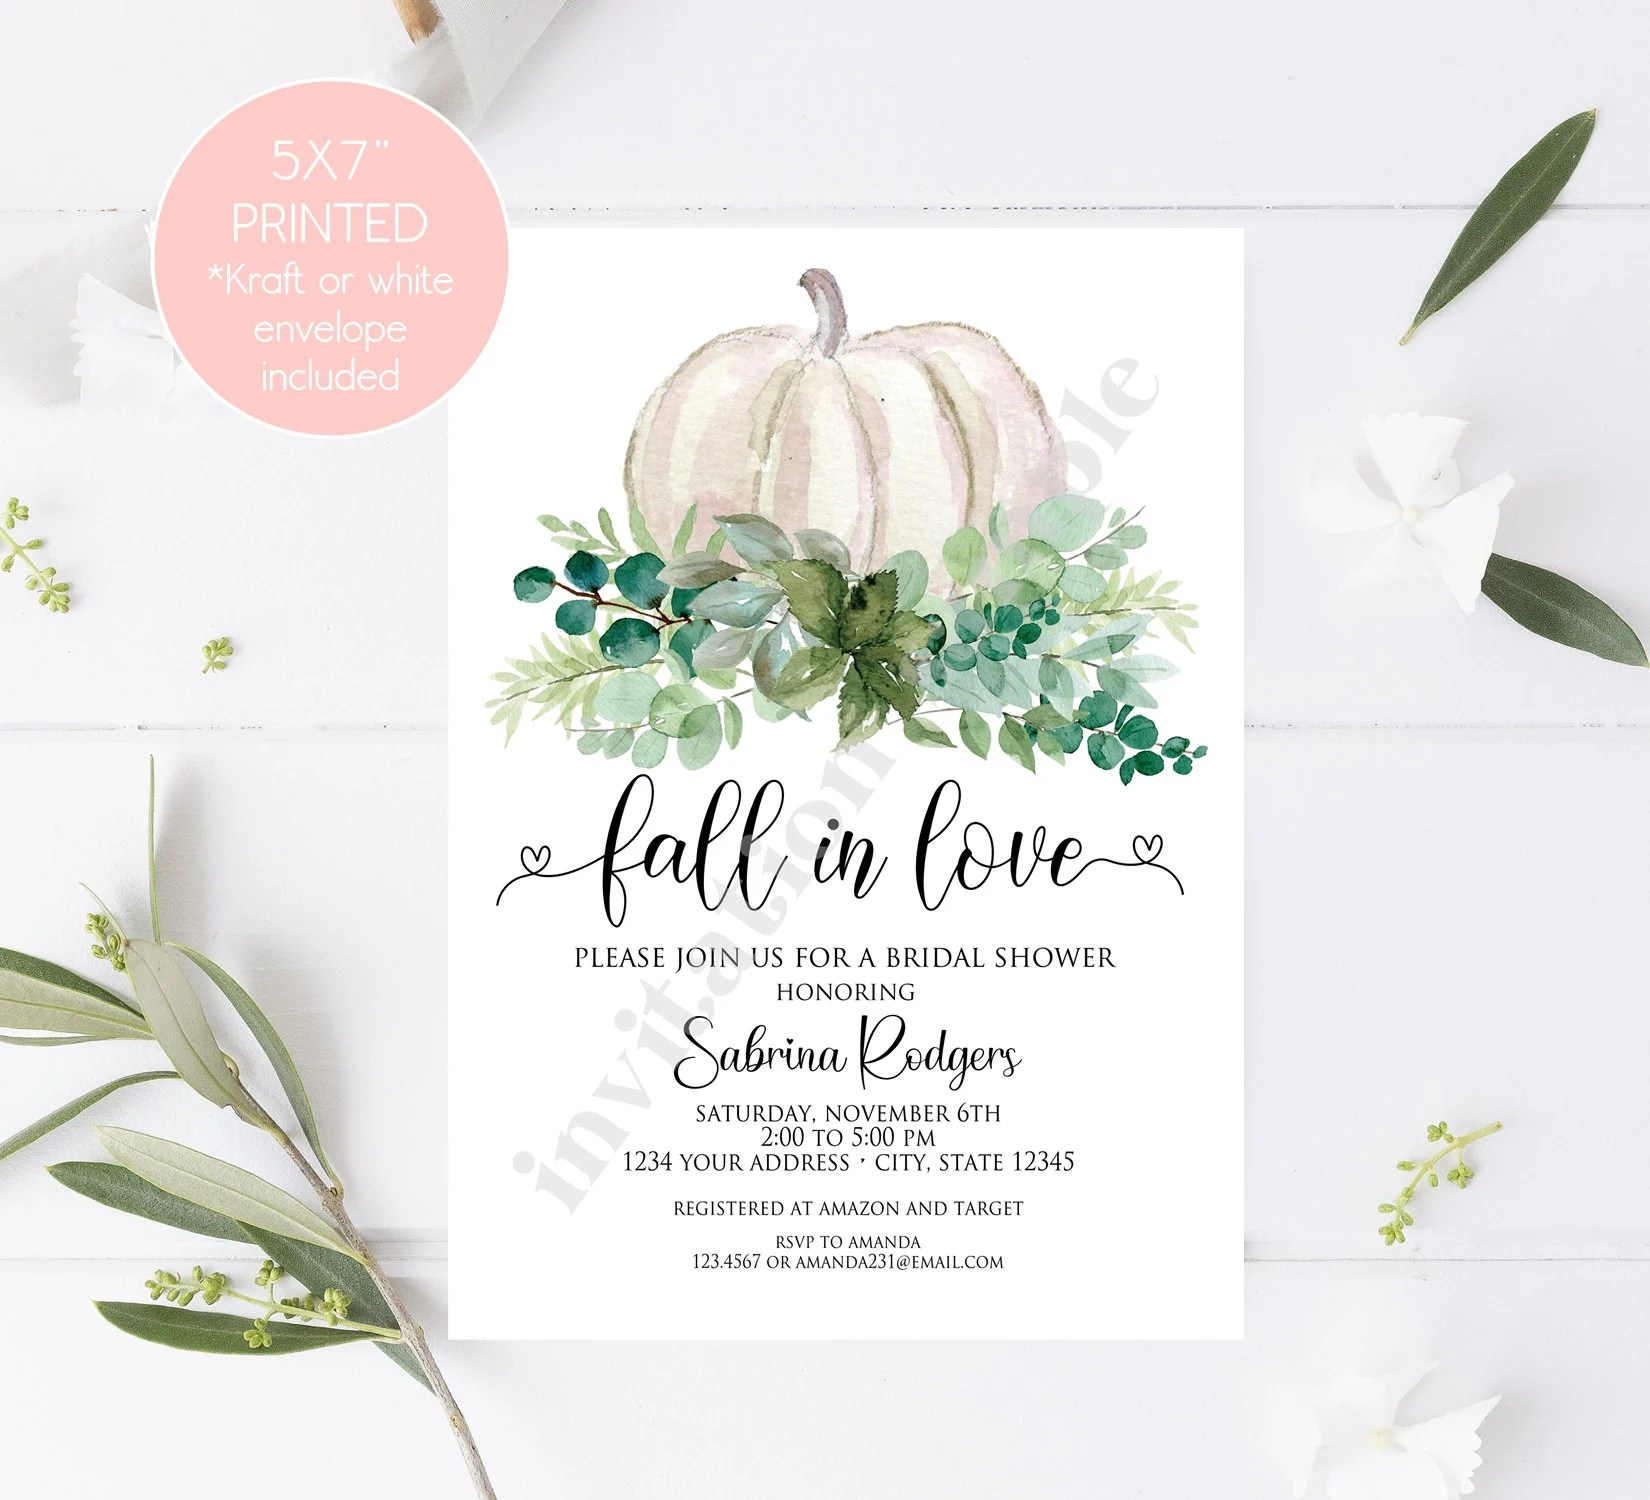 If you're planning to host a one, check out these 10 fun ideas for a bridal shower party. Custom Printed 5x7 Fall In Love Bridal Shower Invitations Greenery Pumpkin Bridal Shower Invitation With Envelope By Paper Monkey Company Catch My Party